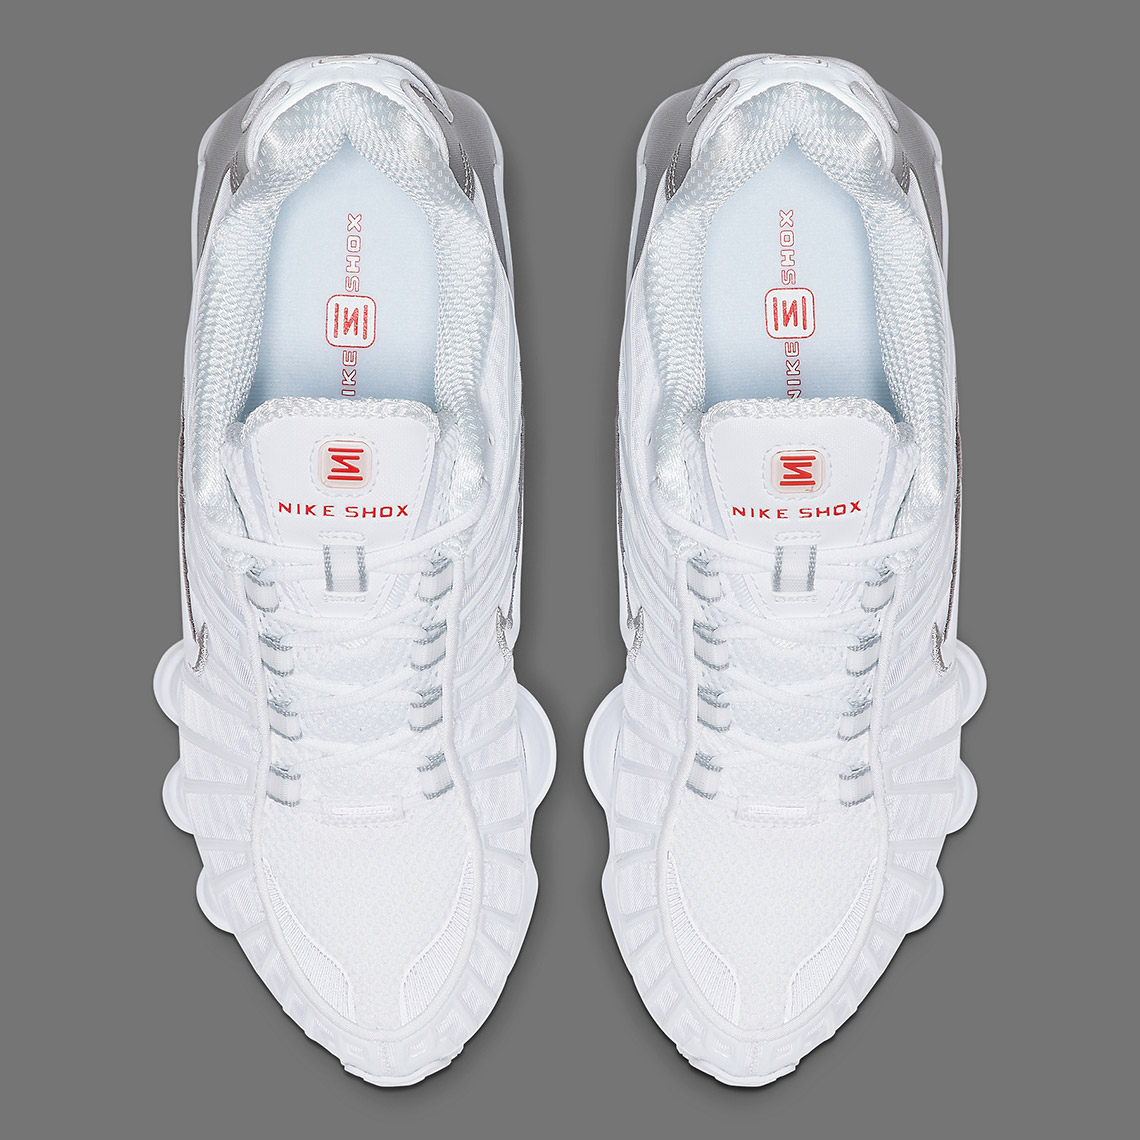 """Nike Shox TL """"White & Silver"""" Release Date Confirmed: Official Images"""